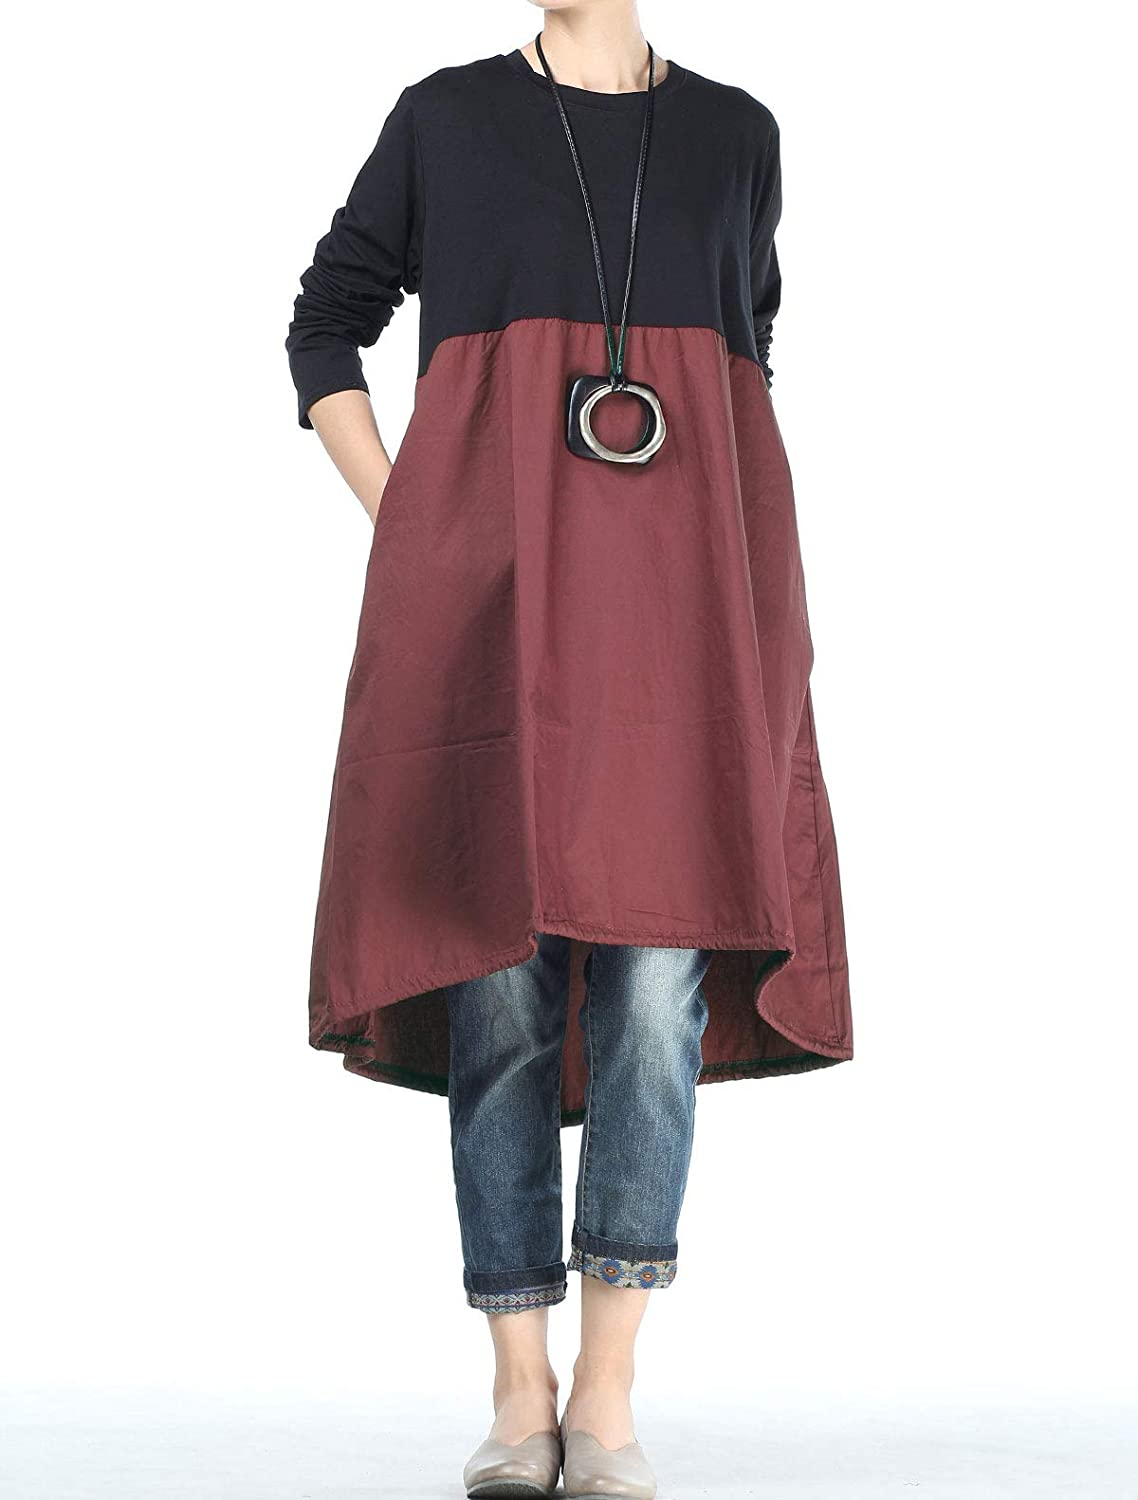 2a6b0a84189 Mordenmiss Women s Asymmetrical Cotton Dress Fall Patchwork Shirt Dress  with Pockets at Amazon Women s Clothing store